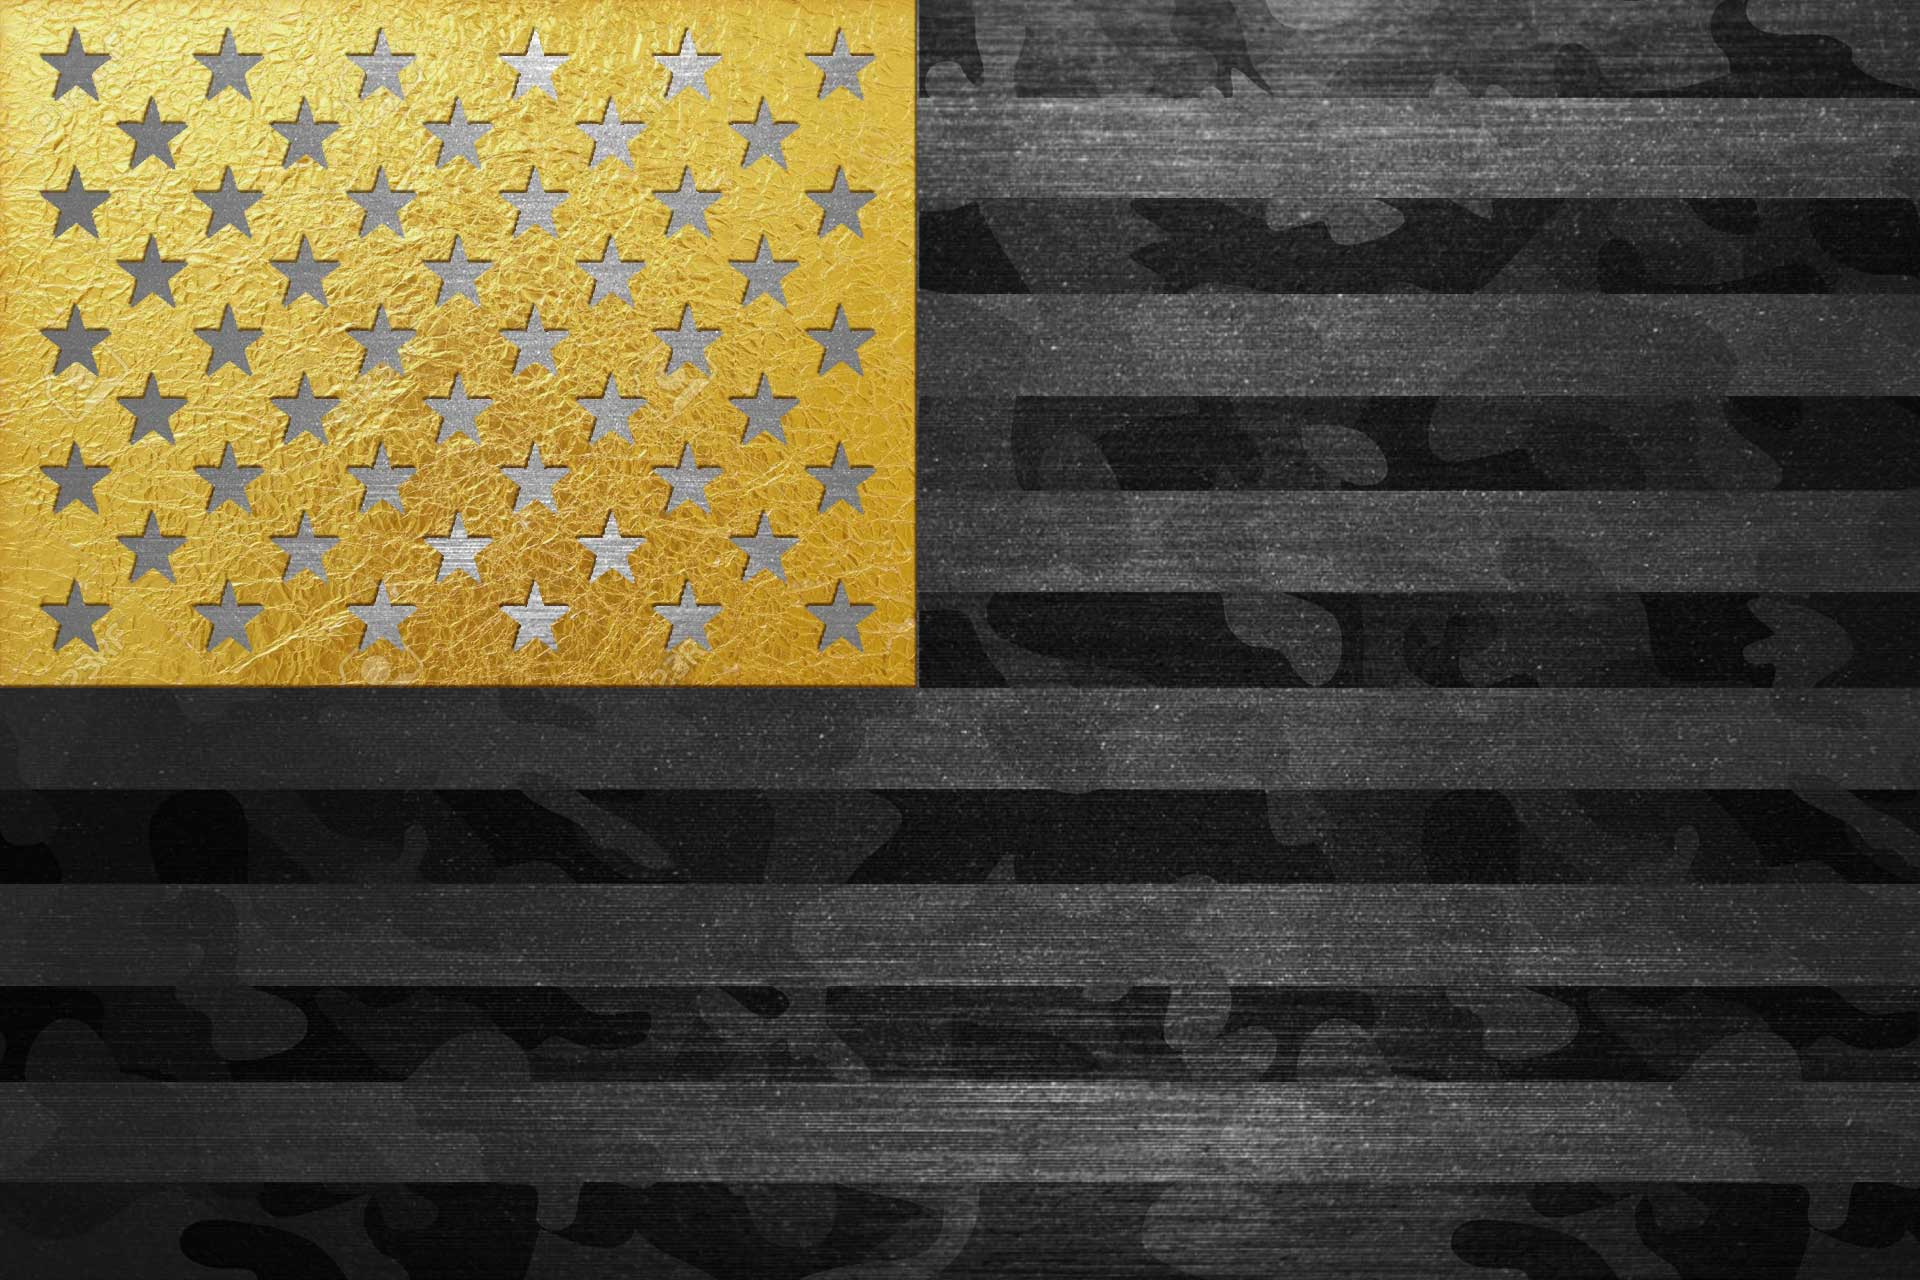 American flag on gunmetal grey with gold stars and black camo.